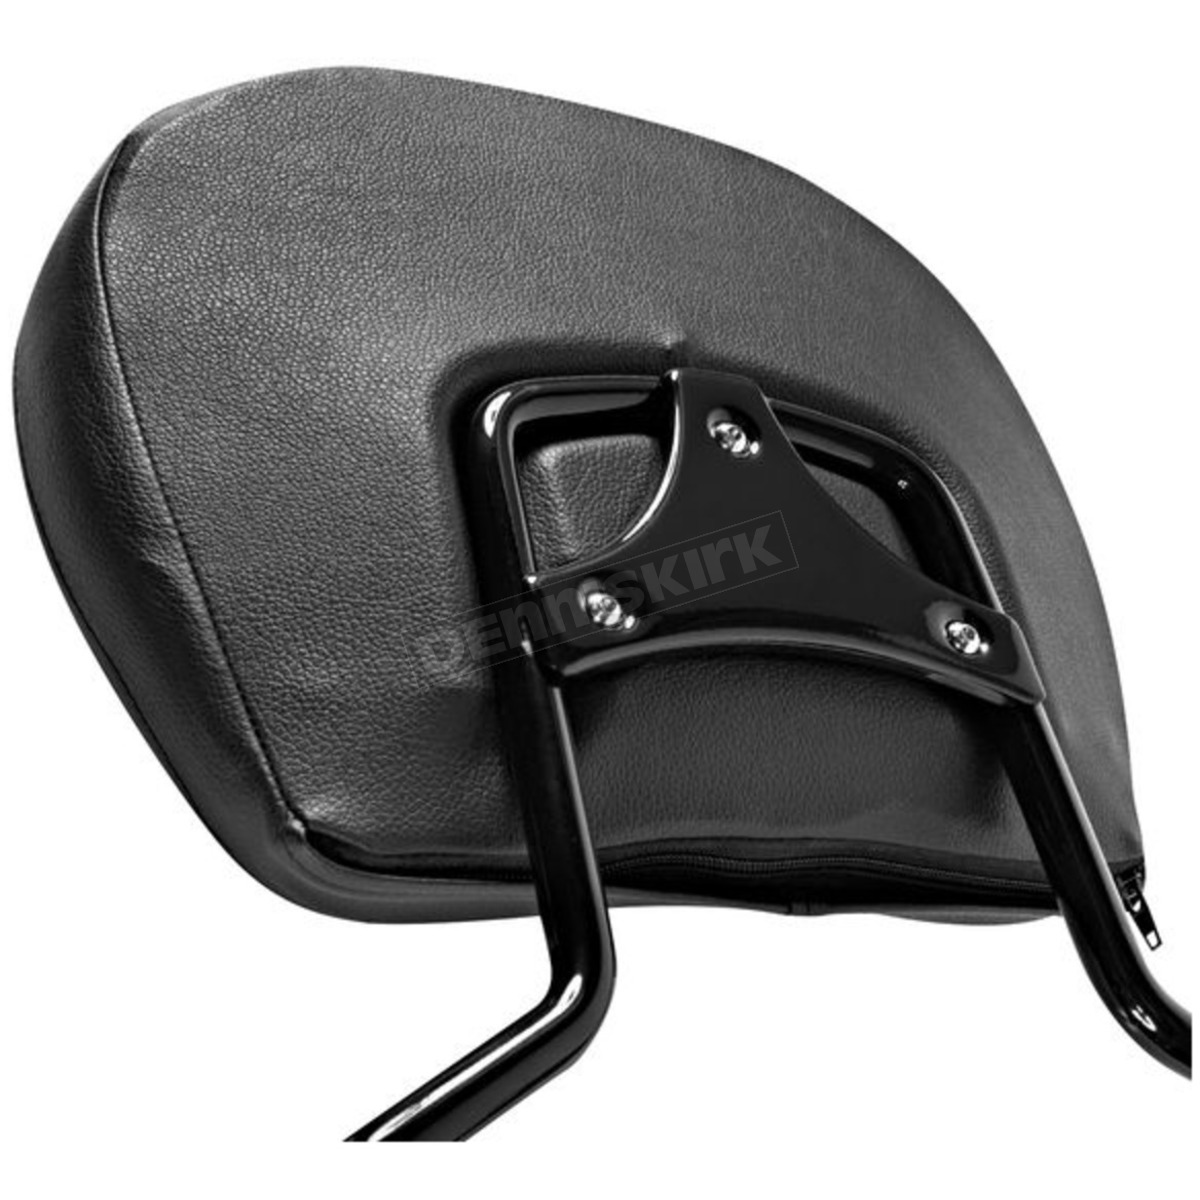 Black Tall Boy Hogworkz Black Tall Boy Detachable Sissy Bar Backrest